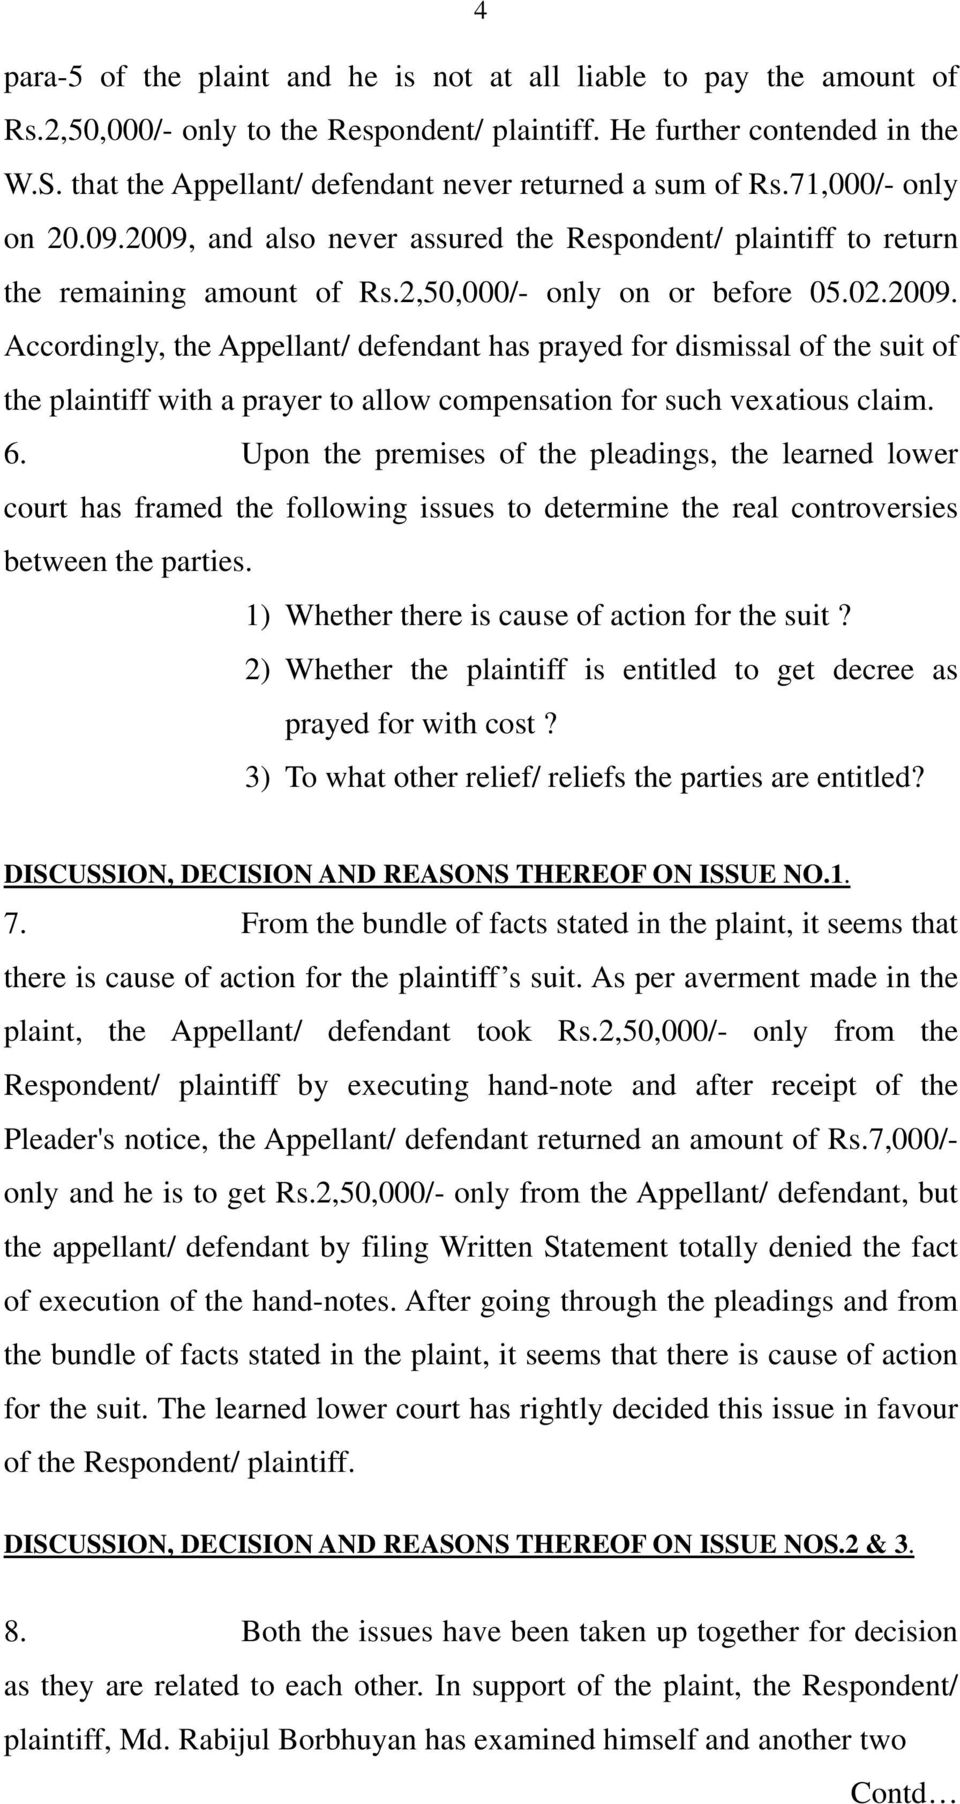 2,50,000/- only on or before 05.02.2009. Accordingly, the Appellant/ defendant has prayed for dismissal of the suit of the plaintiff with a prayer to allow compensation for such vexatious claim. 6.